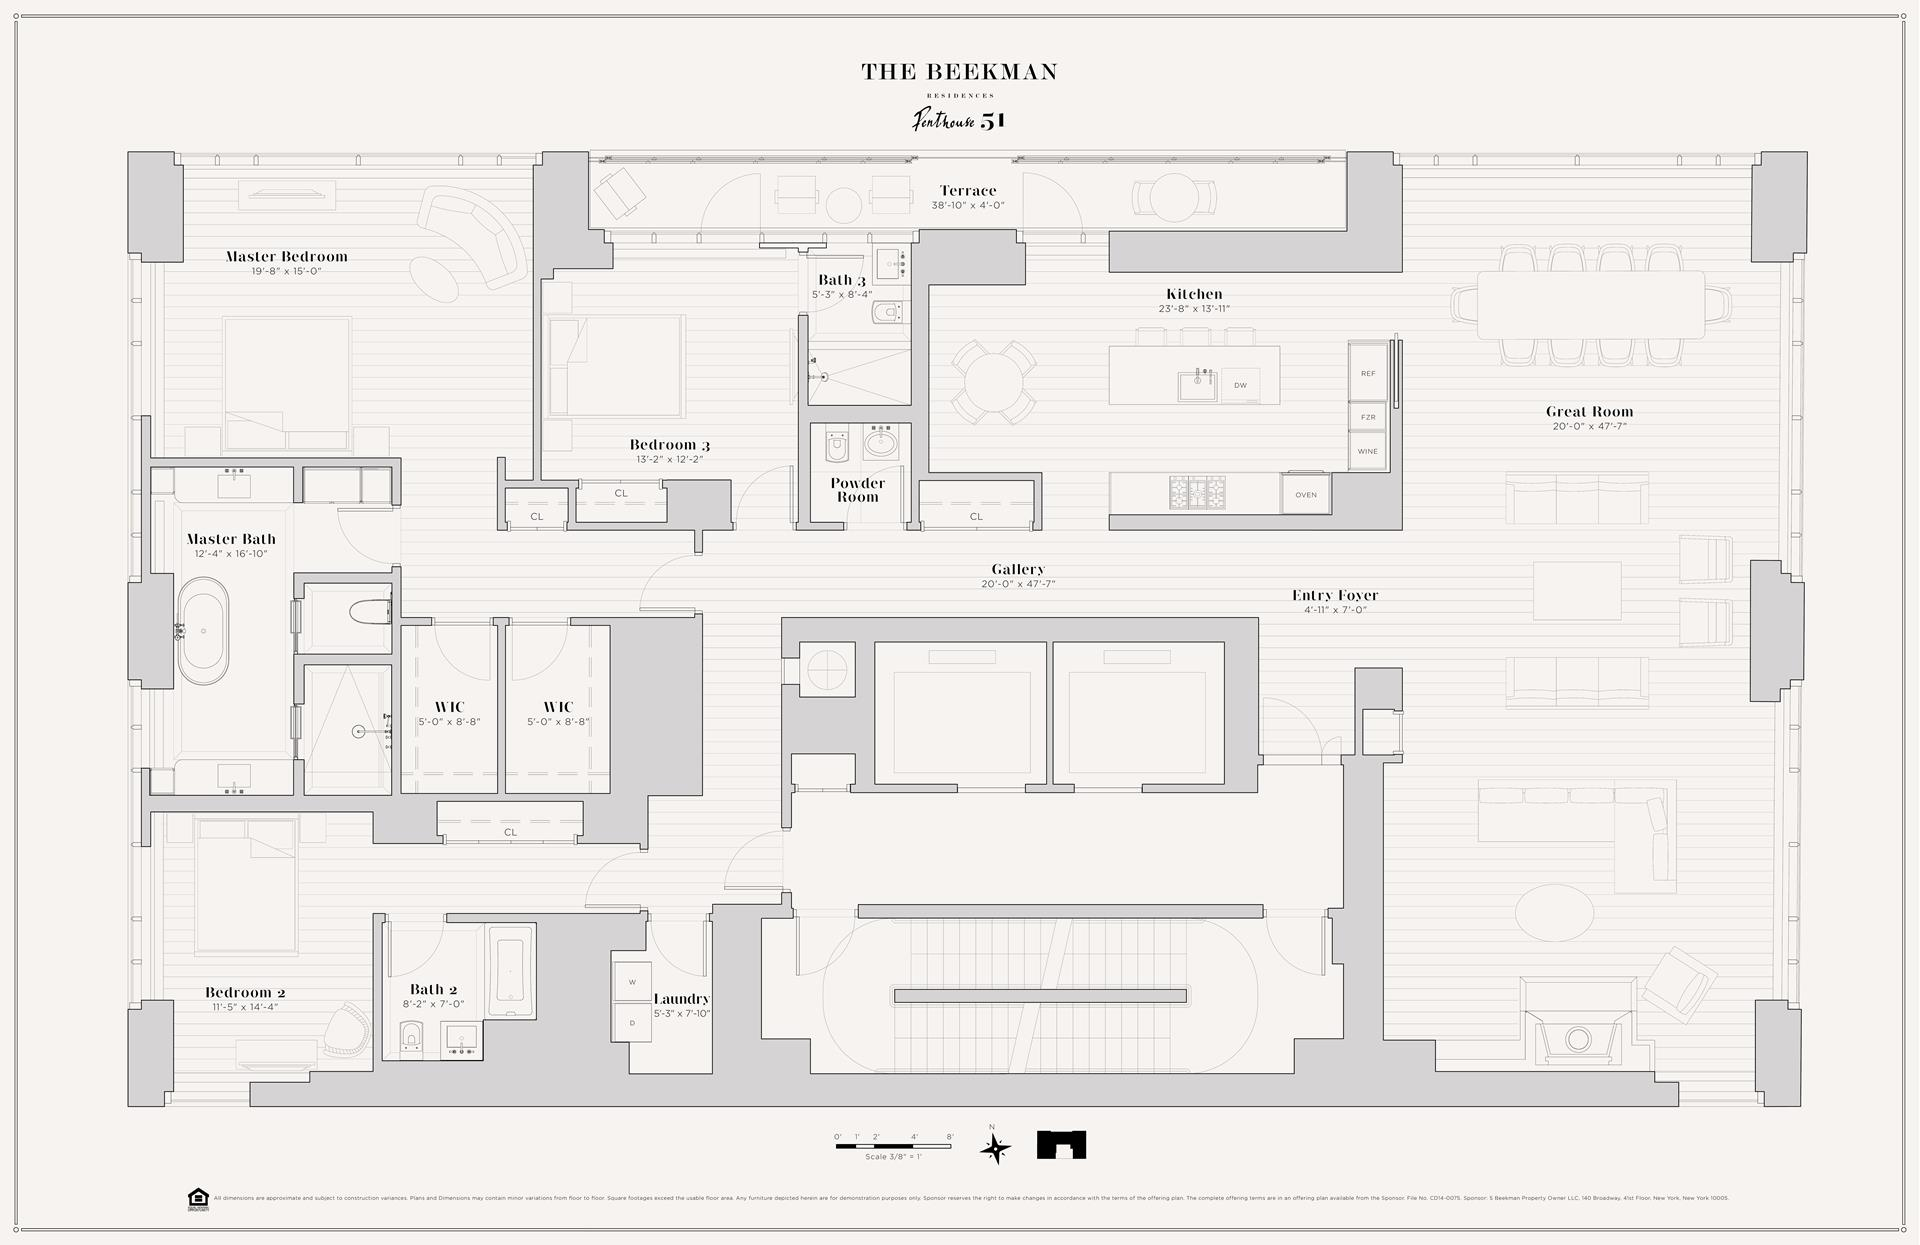 Floor plan of The Beekman Residences, 5 Beekman St, PH51 - Financial District, New York